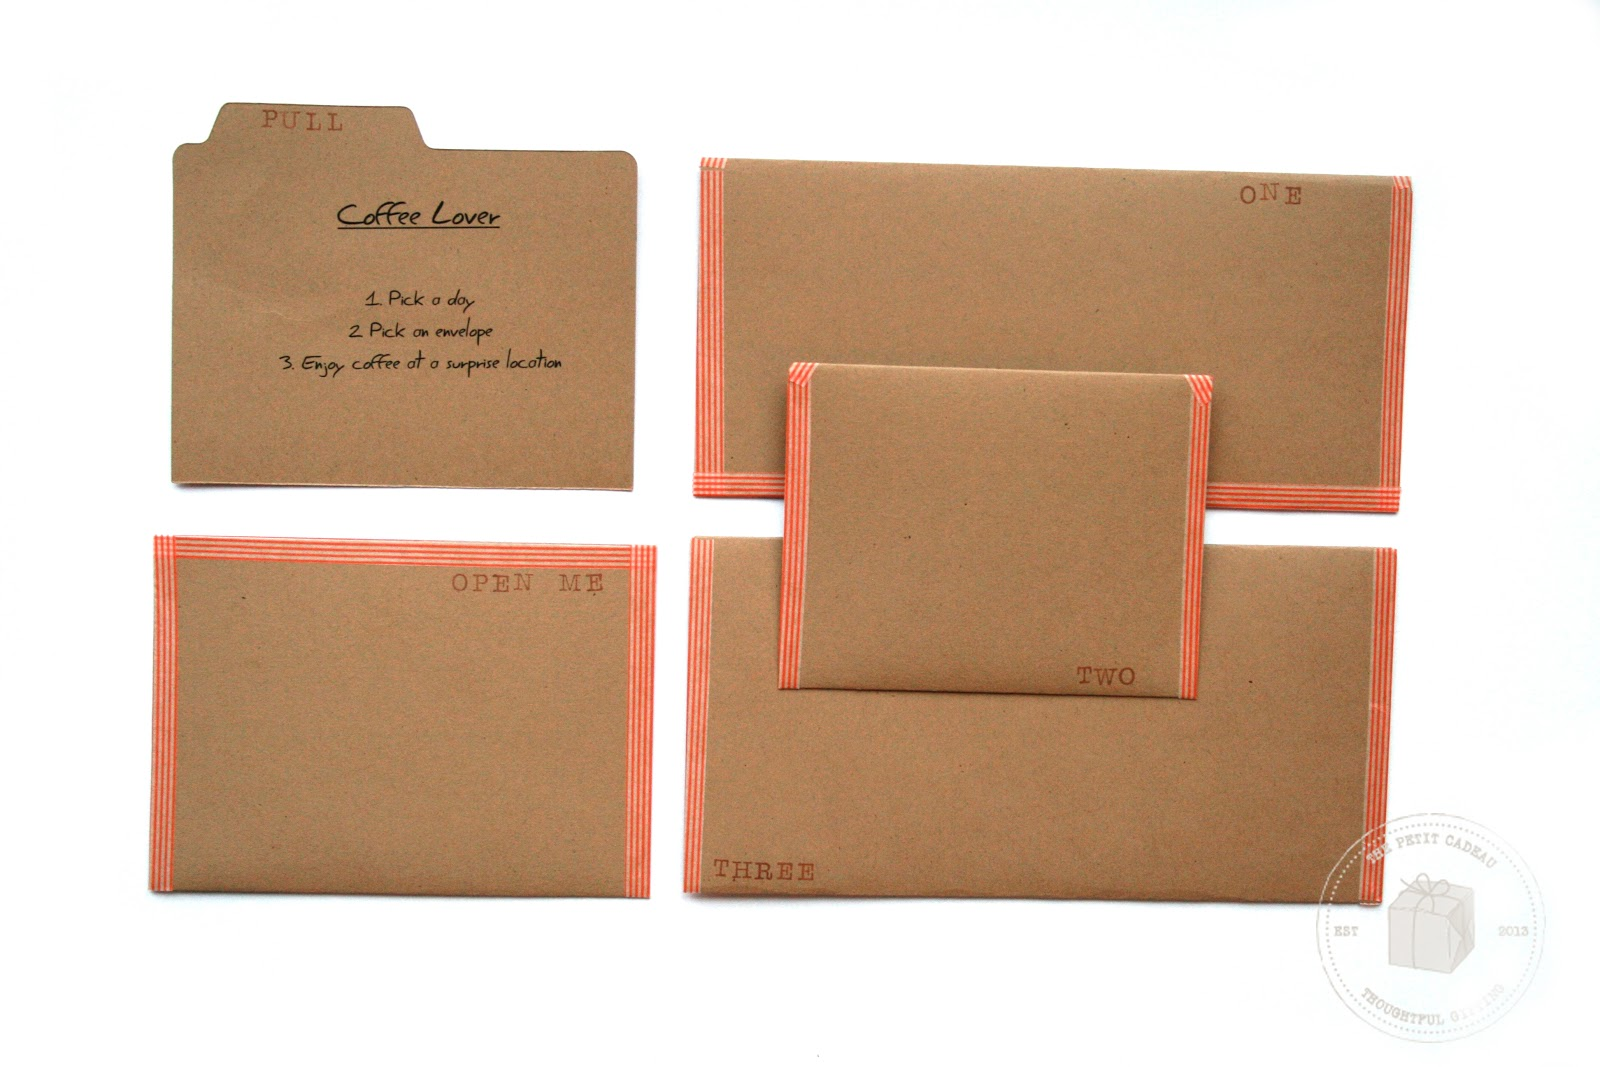 the petit cadeau surprise envelopes easy diy gifting grab several gift gift certificates related to a theme i chose coffee lover and picked up gift certificates for several local coffee spots